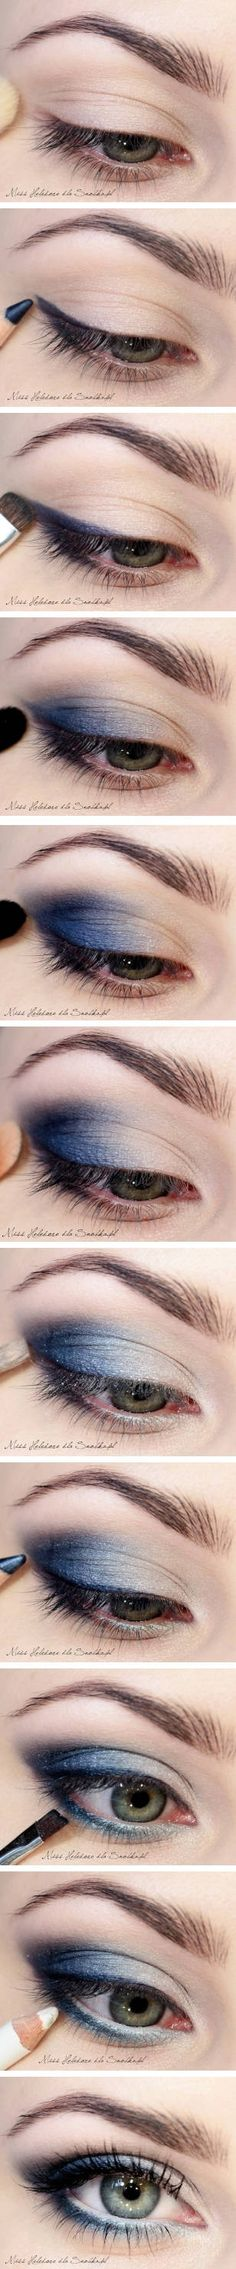 smoky eye with blue